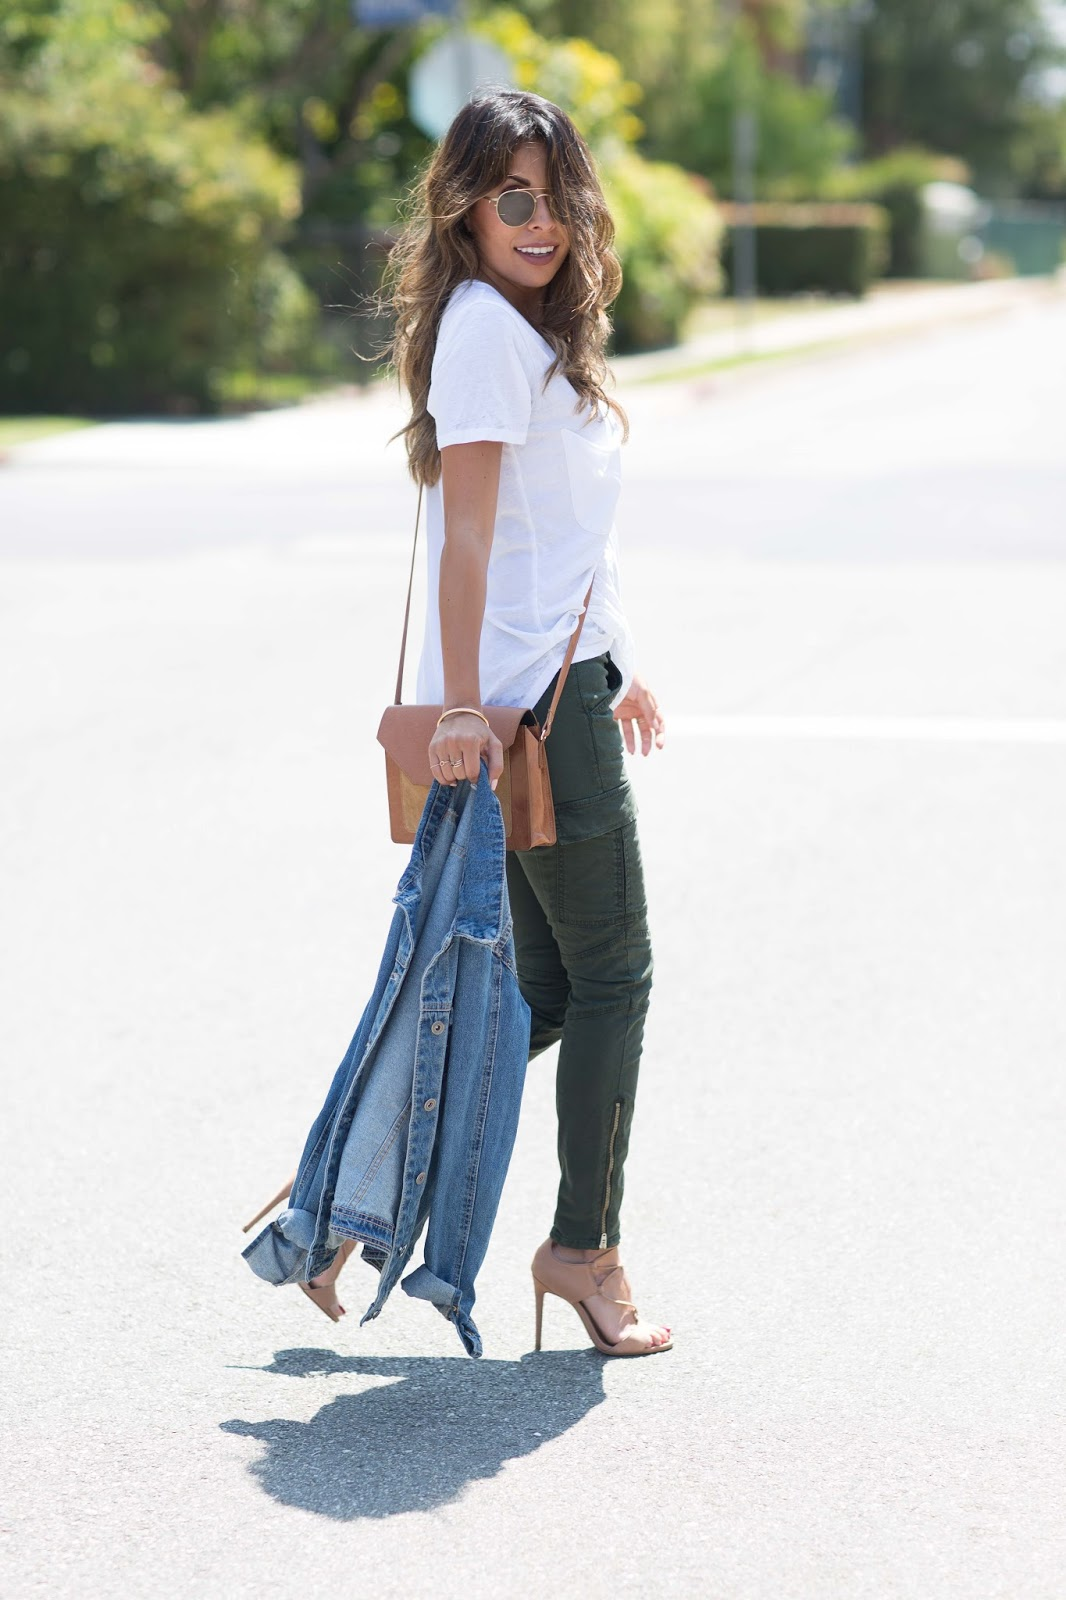 how to wear cargo pants, J. Brand Houlihan, pursuit of shoes style